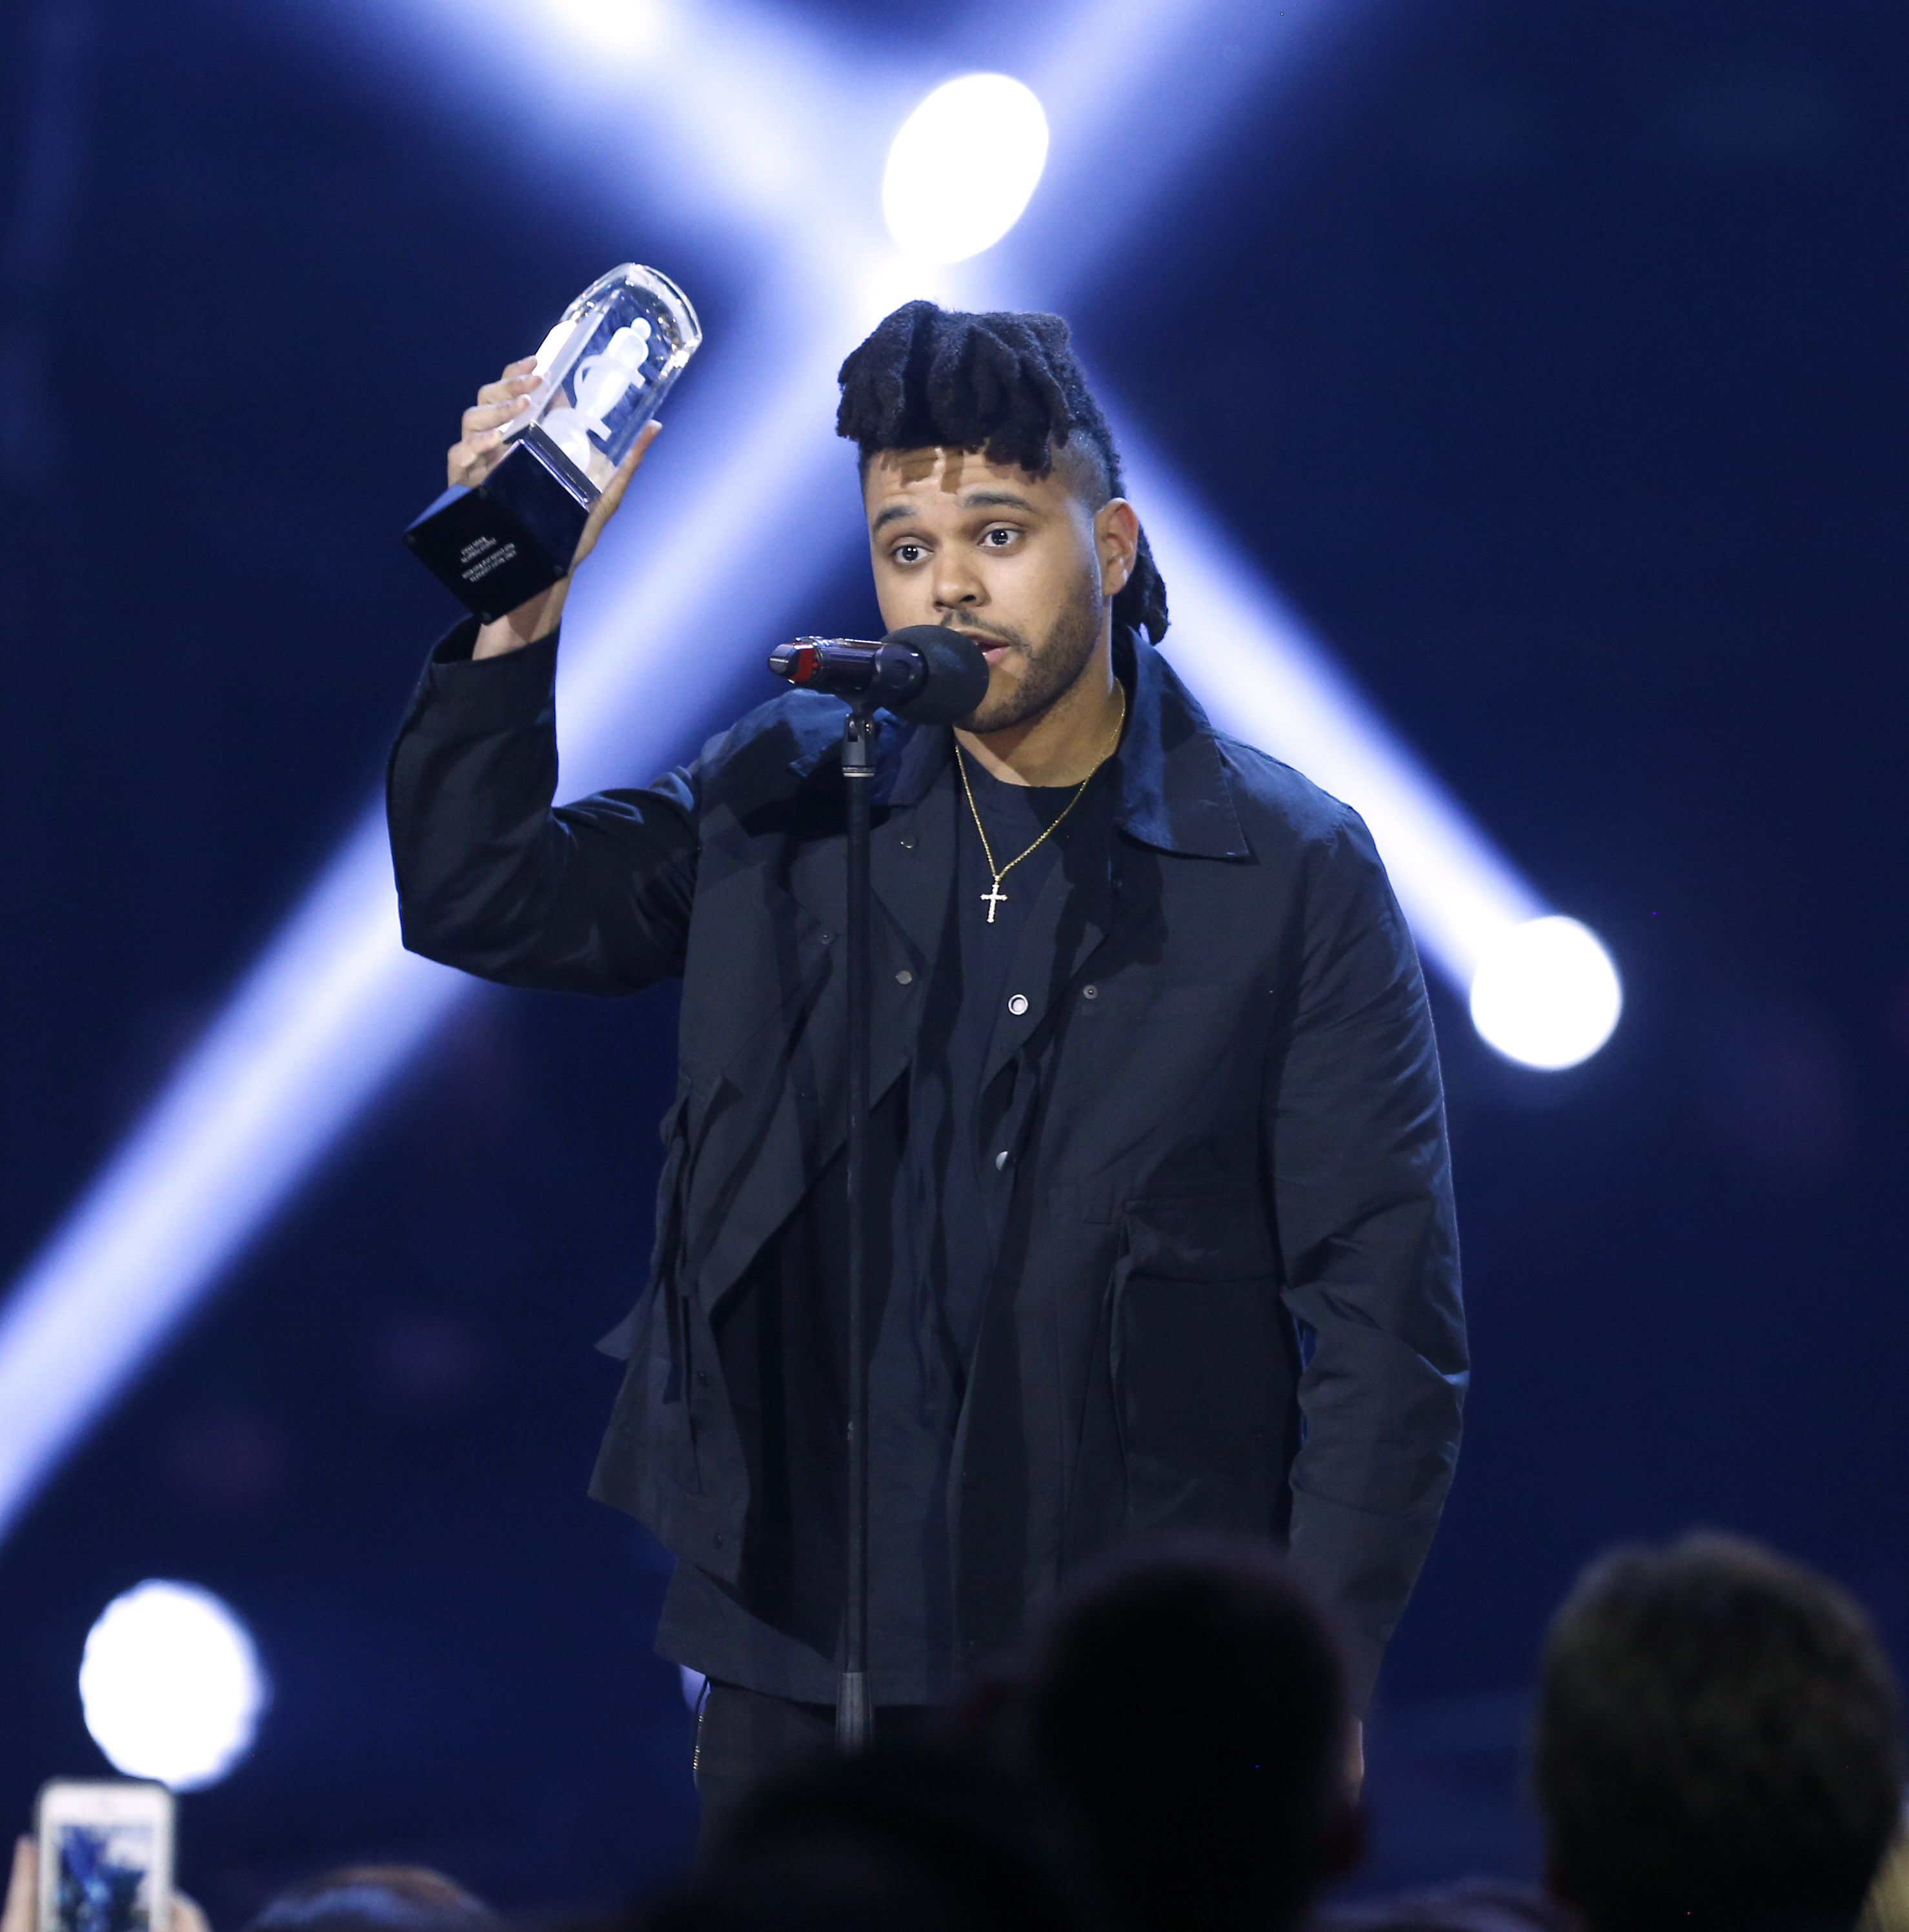 The 2016 JUNO Awards. Single of the Year winner The Weeknd. Scotiabank Saddledome, Calgary, AB. April 3, 2016.